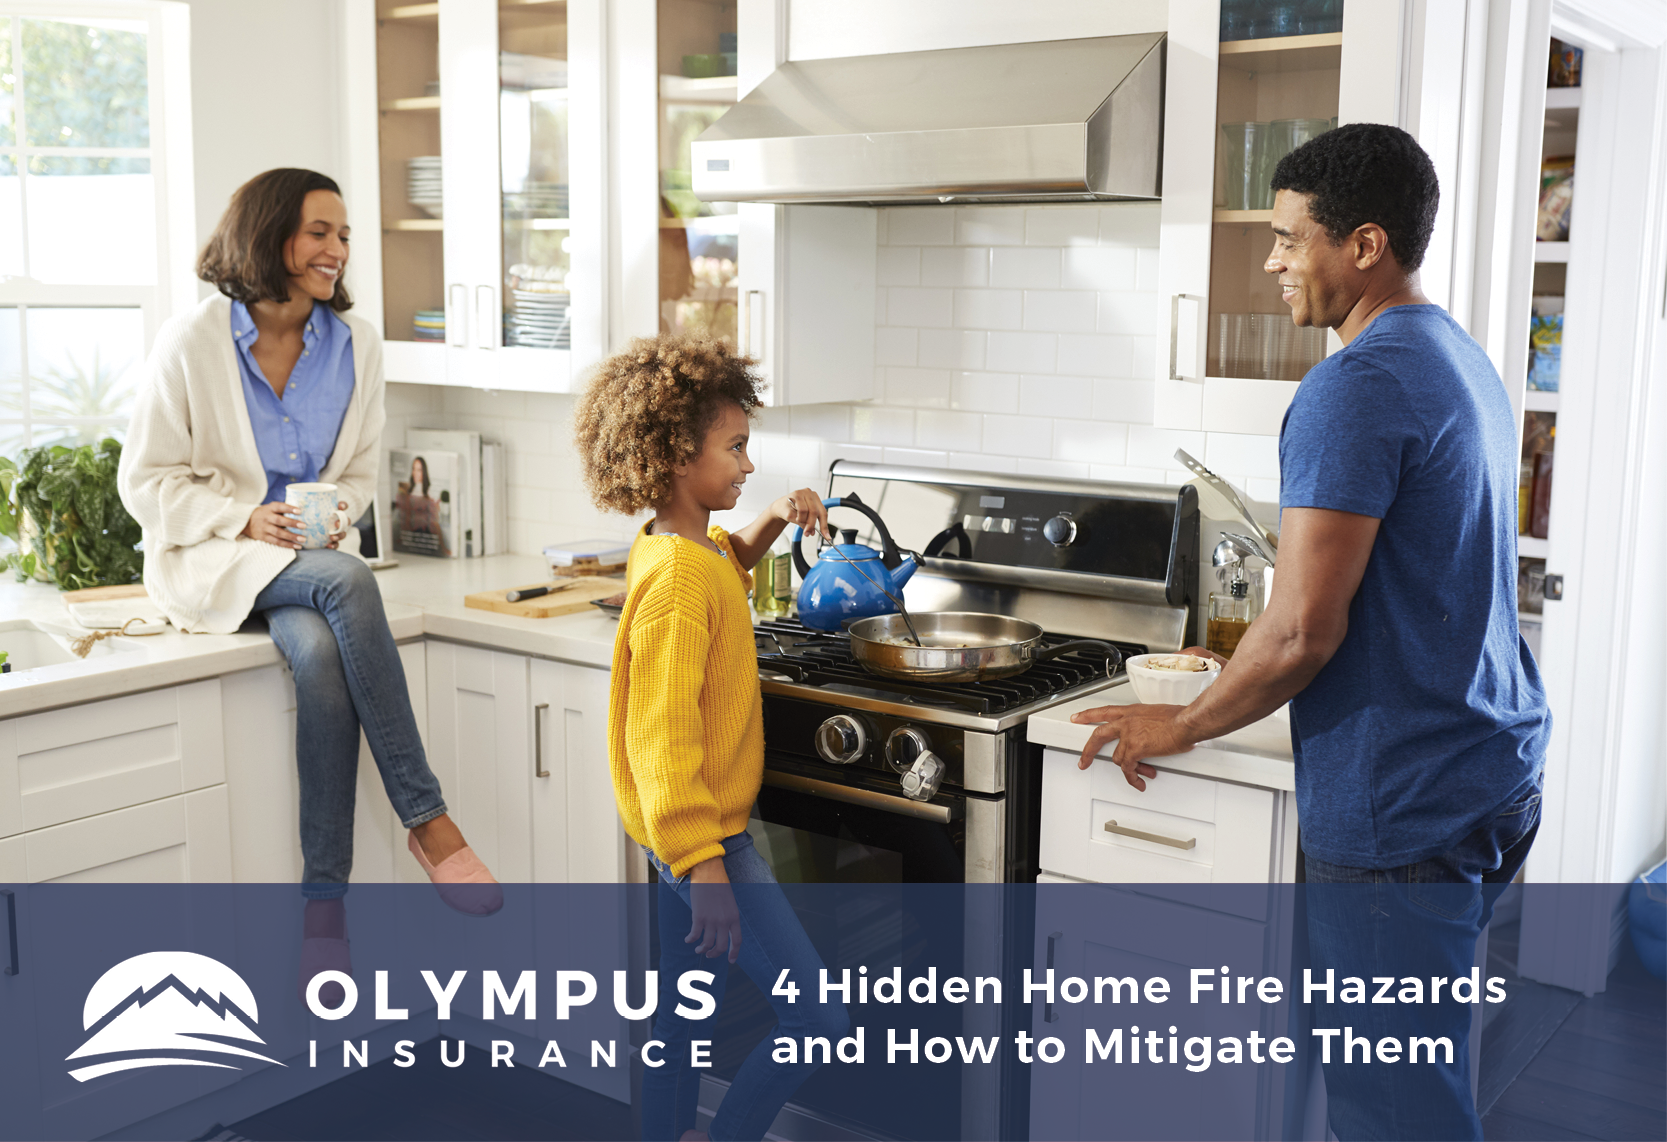 4 Hidden Home Fire Hazards and How to Mitigate Them